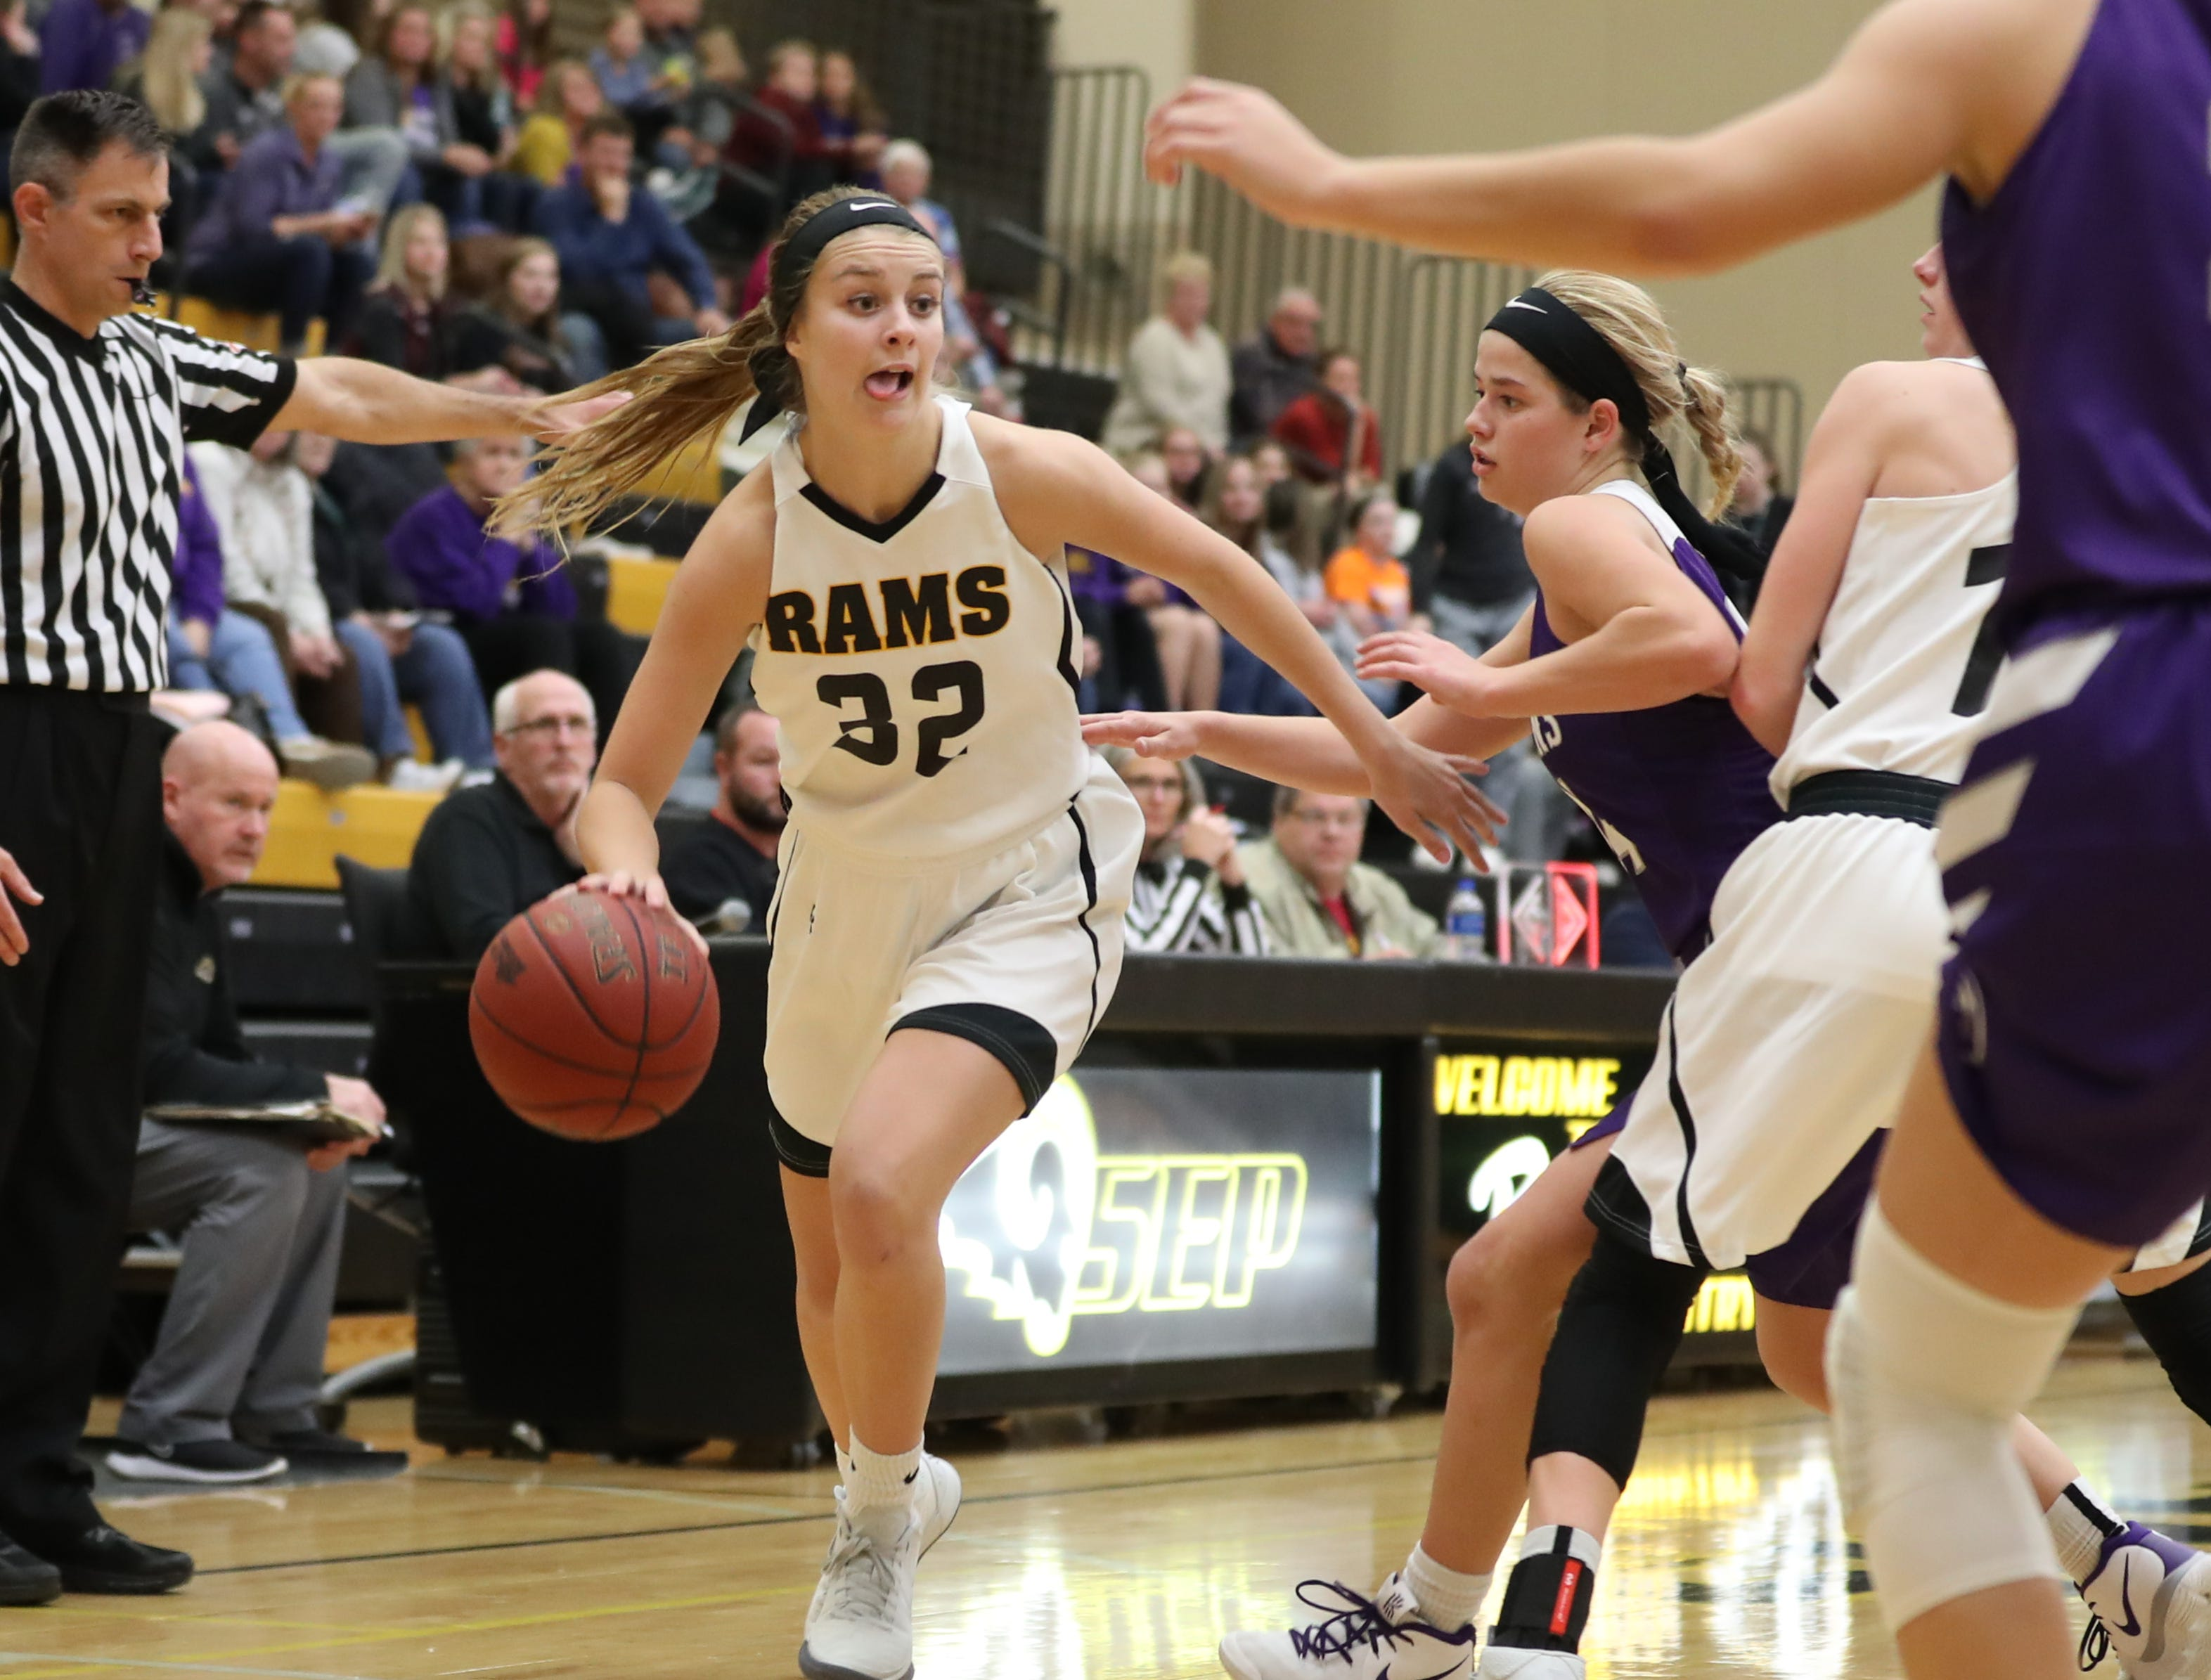 Nov 20, 2018; Pleasant Hill, IA, USA; Southeast Polk Rams Maggie McGraw (32) drives to the basket against the Indianola Indians at Southeast Polk Gymnasium.